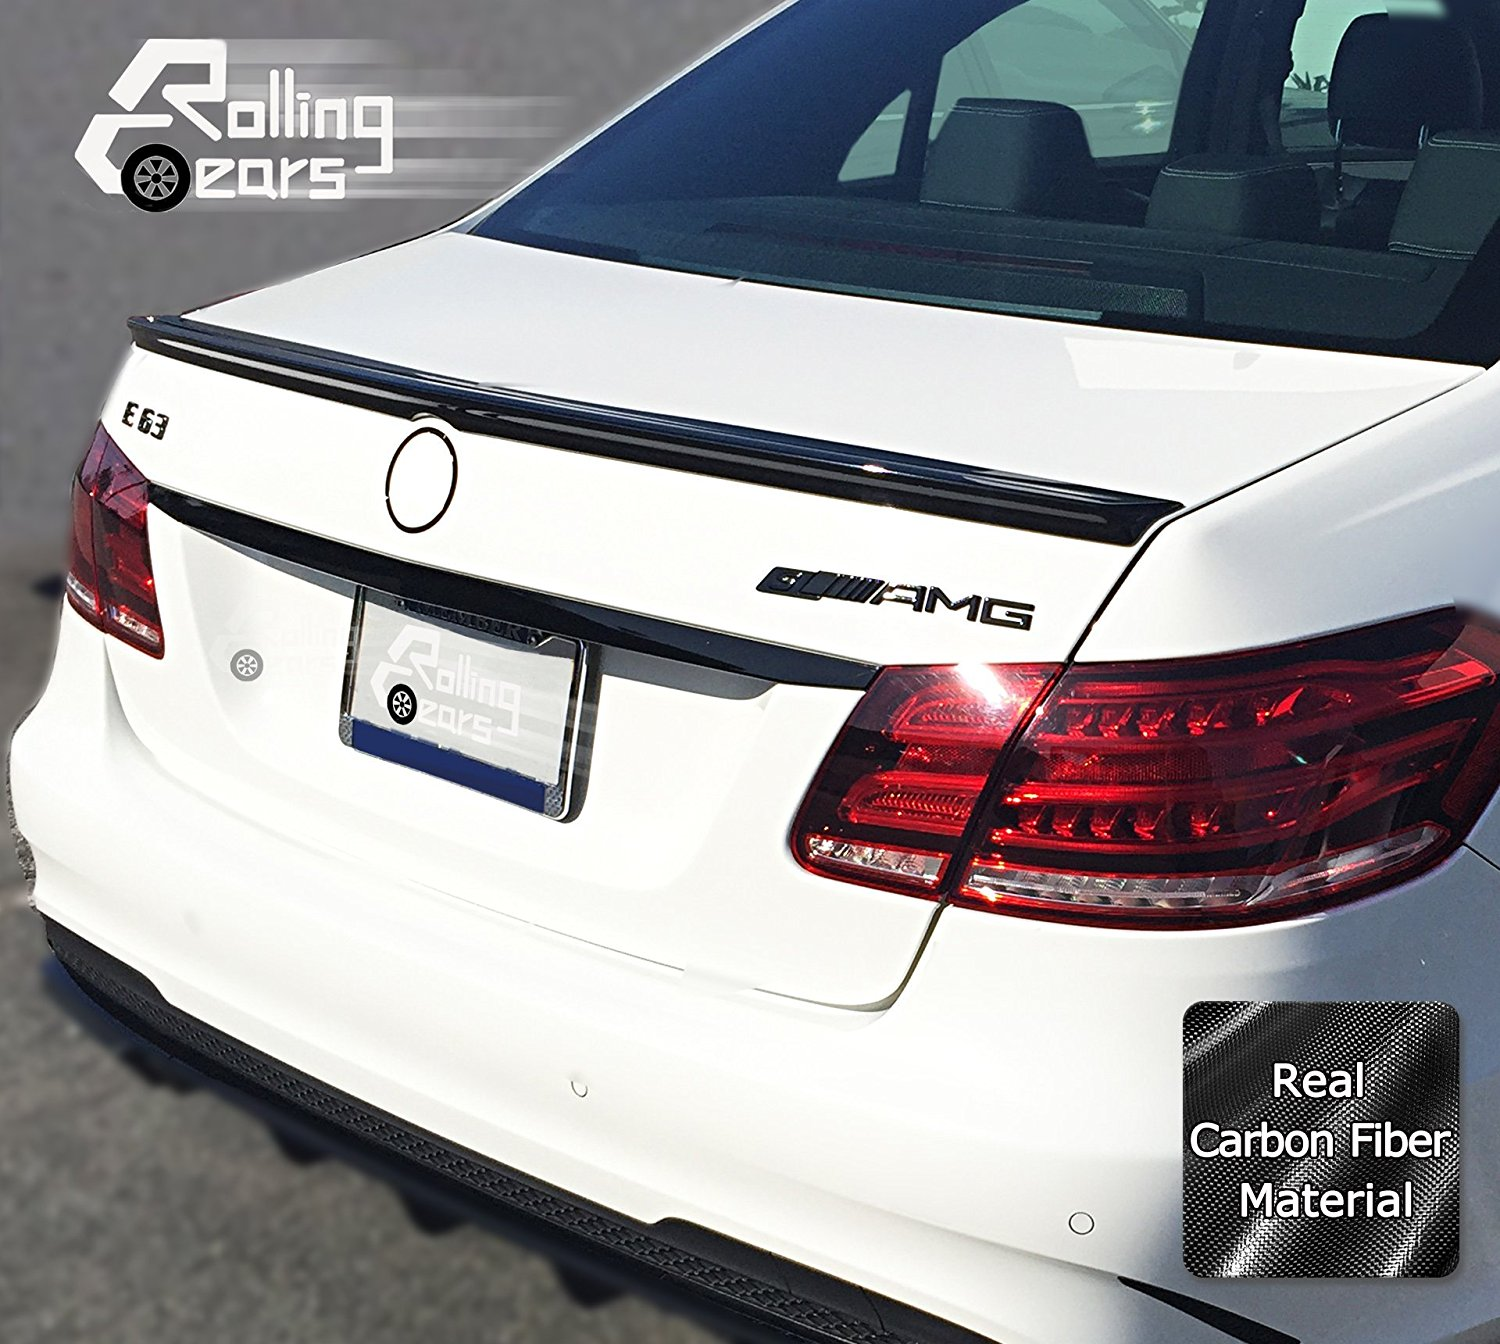 AMG Sport Package Type Style Real Dry Carbon Fiber Rear Ducktail Boot Spoiler Trunk Lid Wings For Mercedes-Benz W212 E Class E300 E350 E63 Sedan